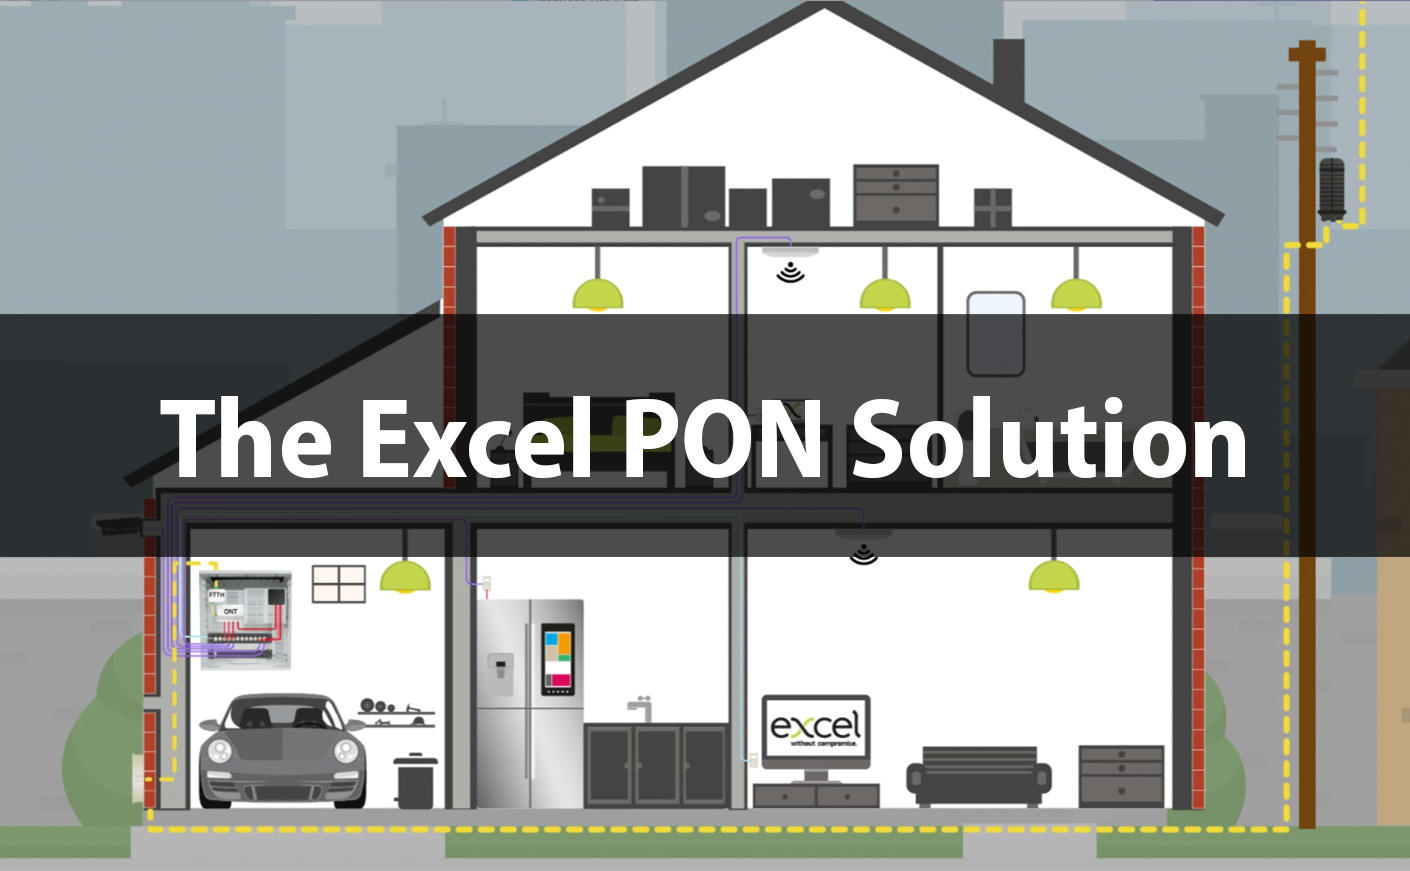 PON Solution Video